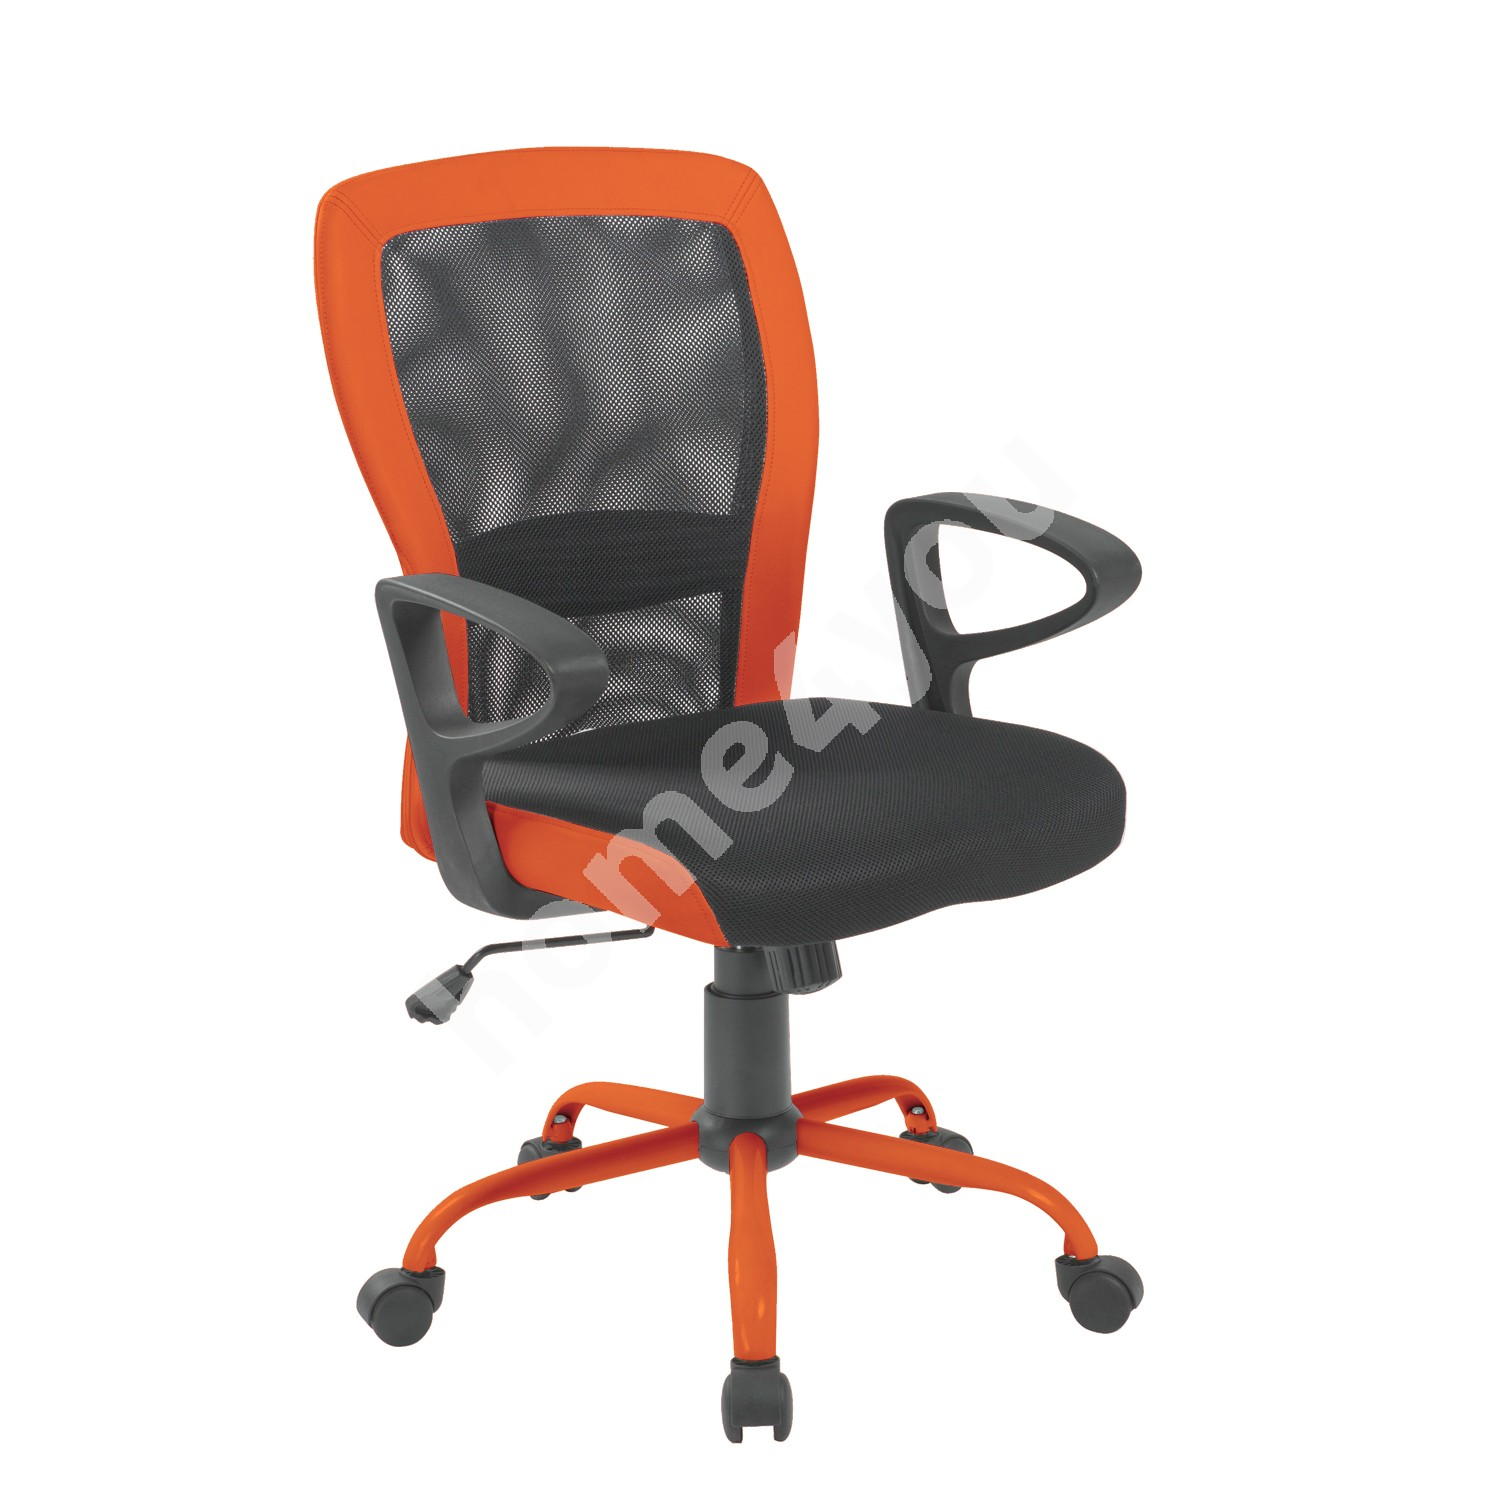 Task chair LENO 60x57xH91/98,5cm, seat: fabric, color: grey, back: mesh: color: grey, orange PU borders